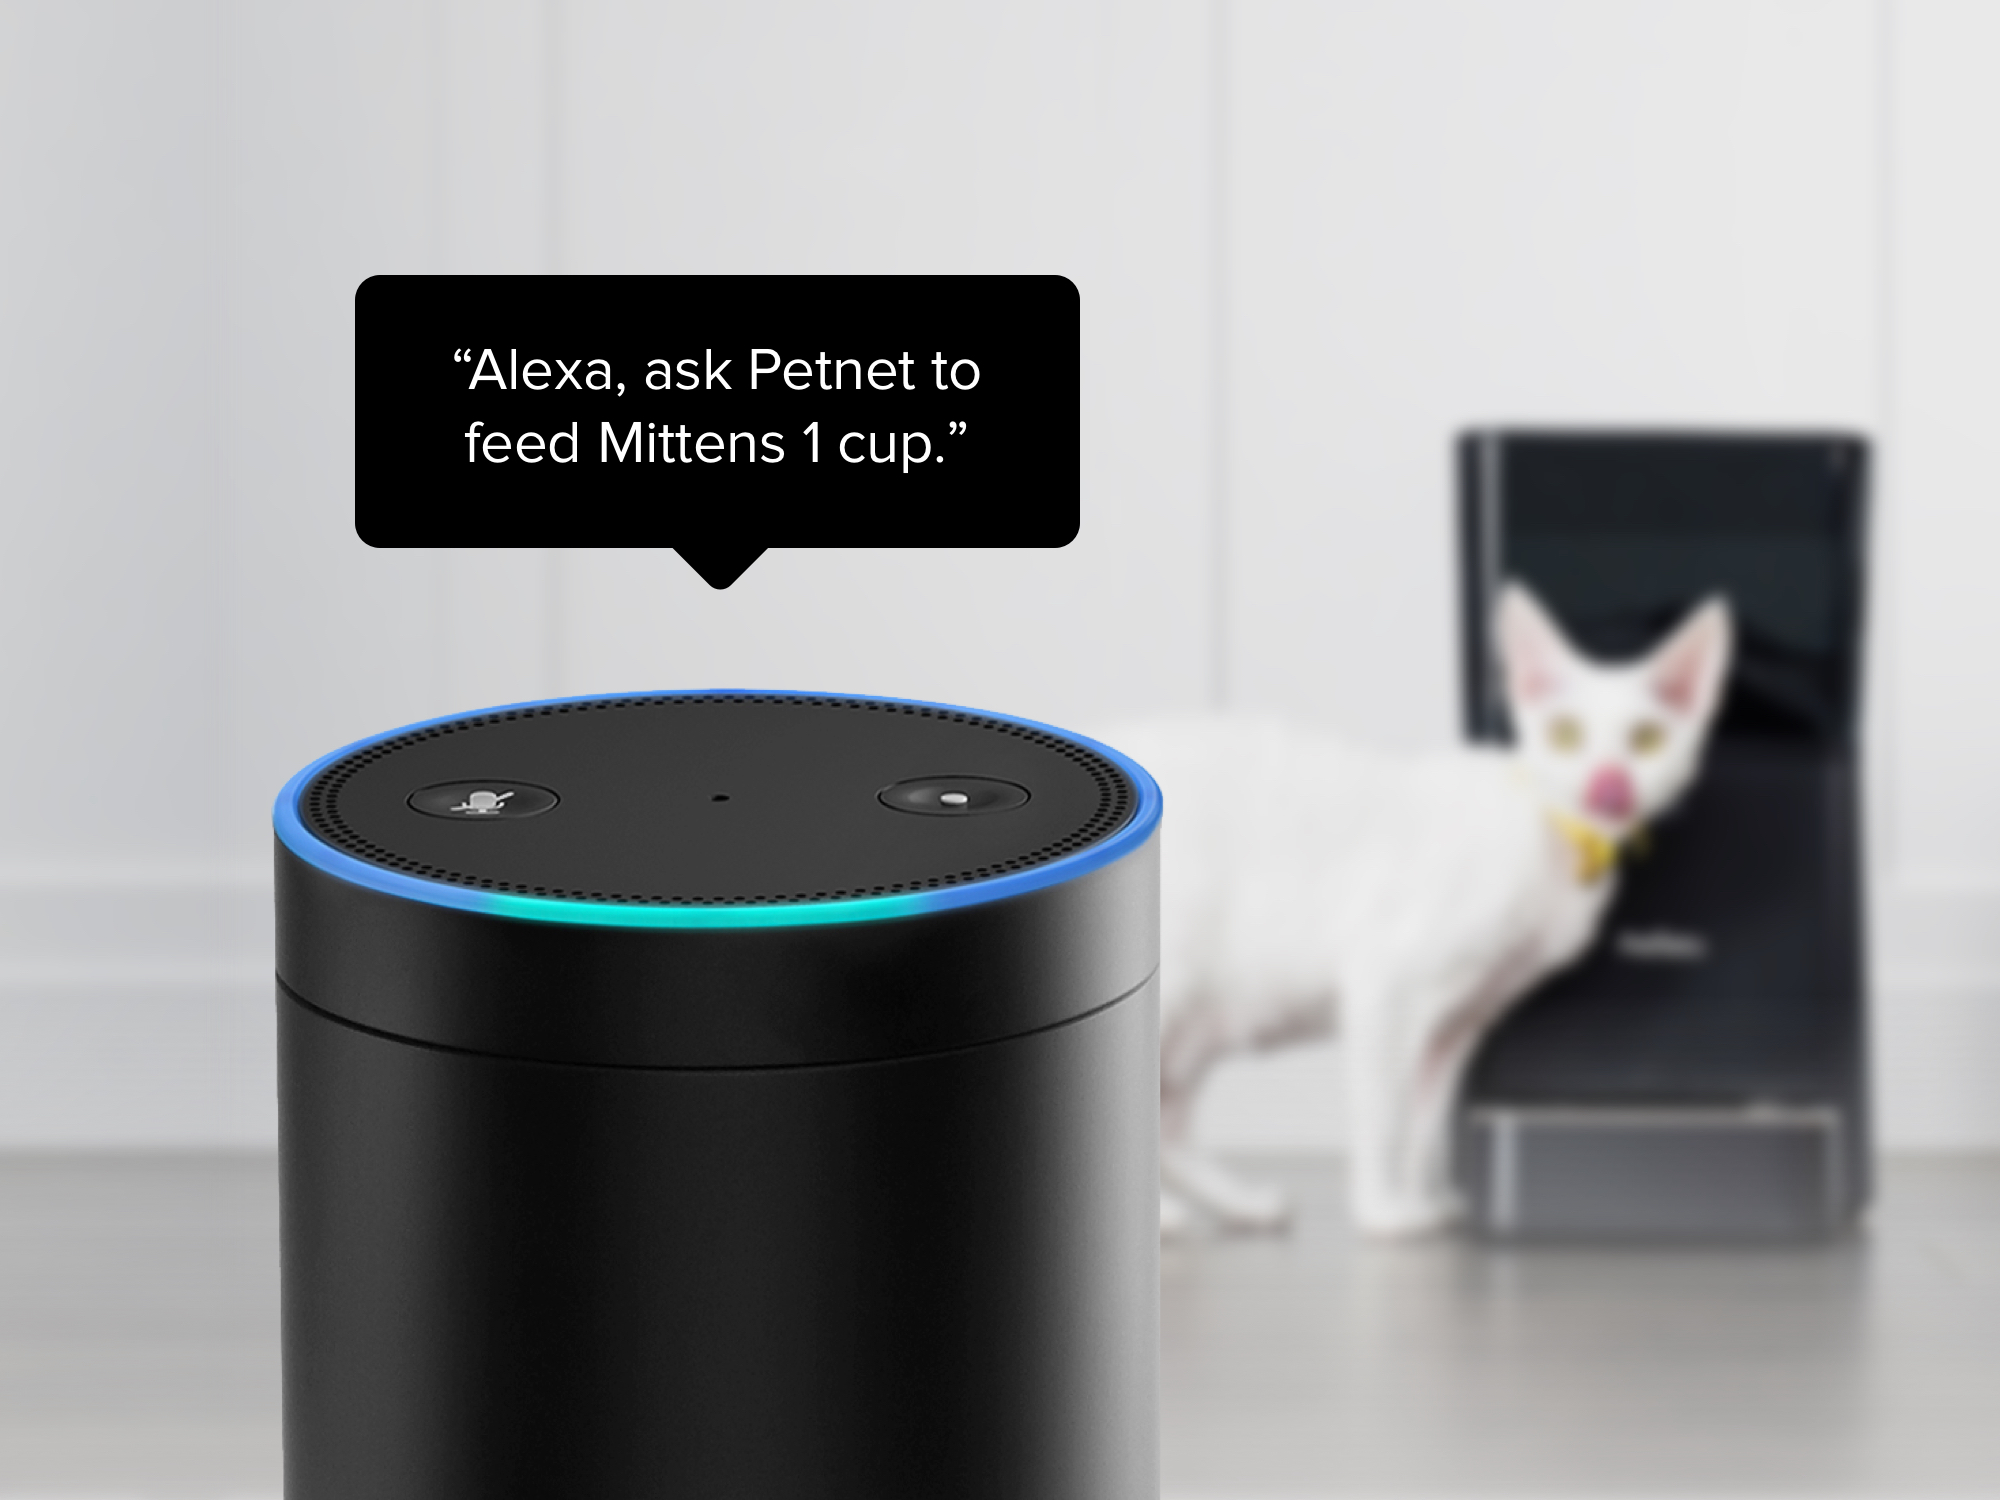 Cortana, open Alexa: Microsoft demos voice assistant integration at Build